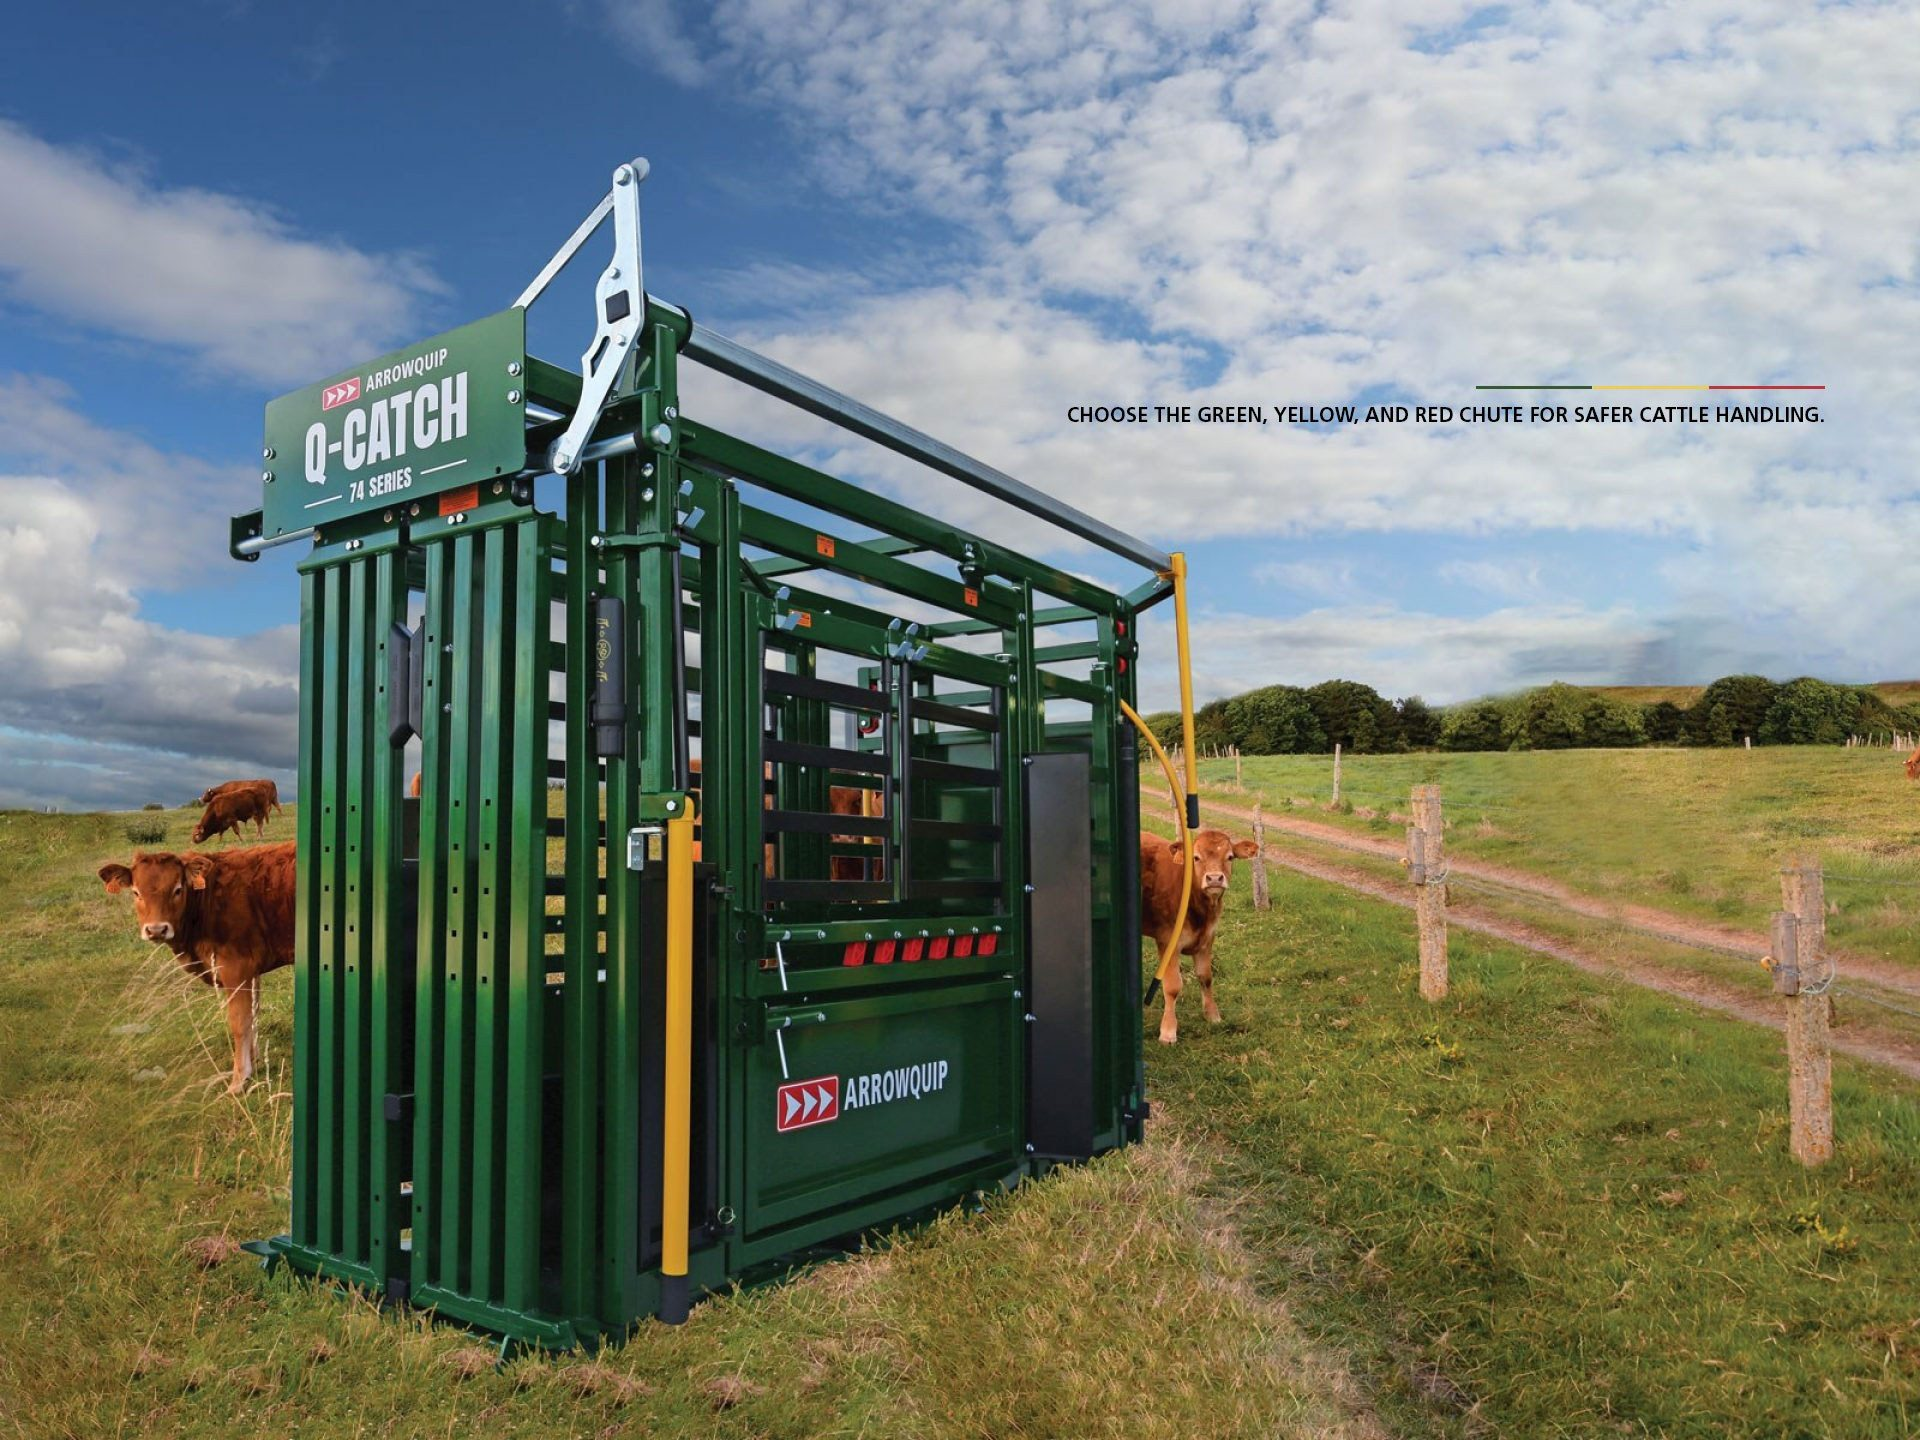 74 Series Squeeze Chute in pasture with cattle around